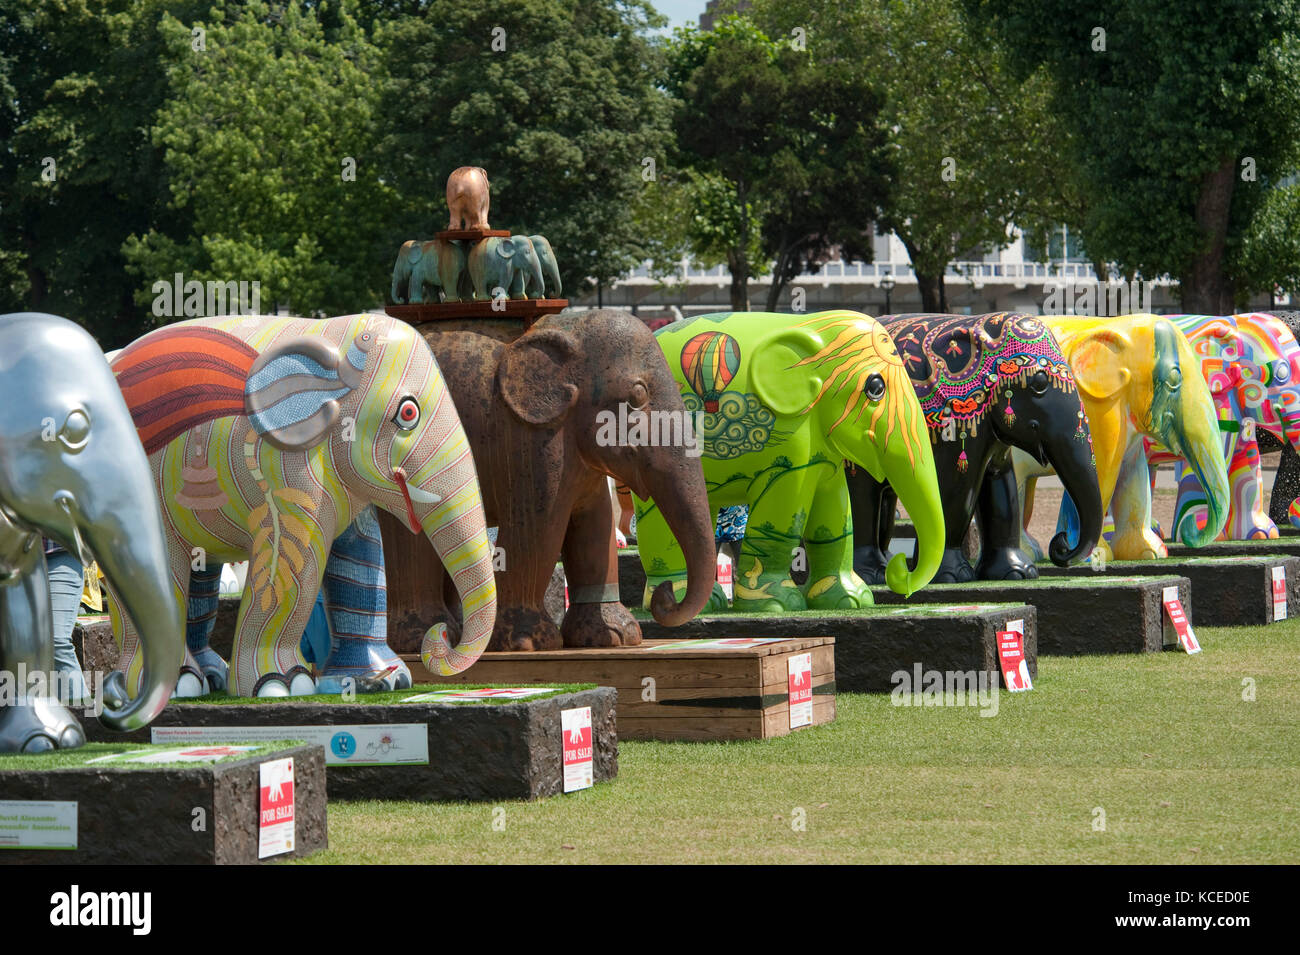 Royal Hospital, Chelsea, London. The Elephant Parade was an open air art exhibition of decorated elephant statues. - Stock Image